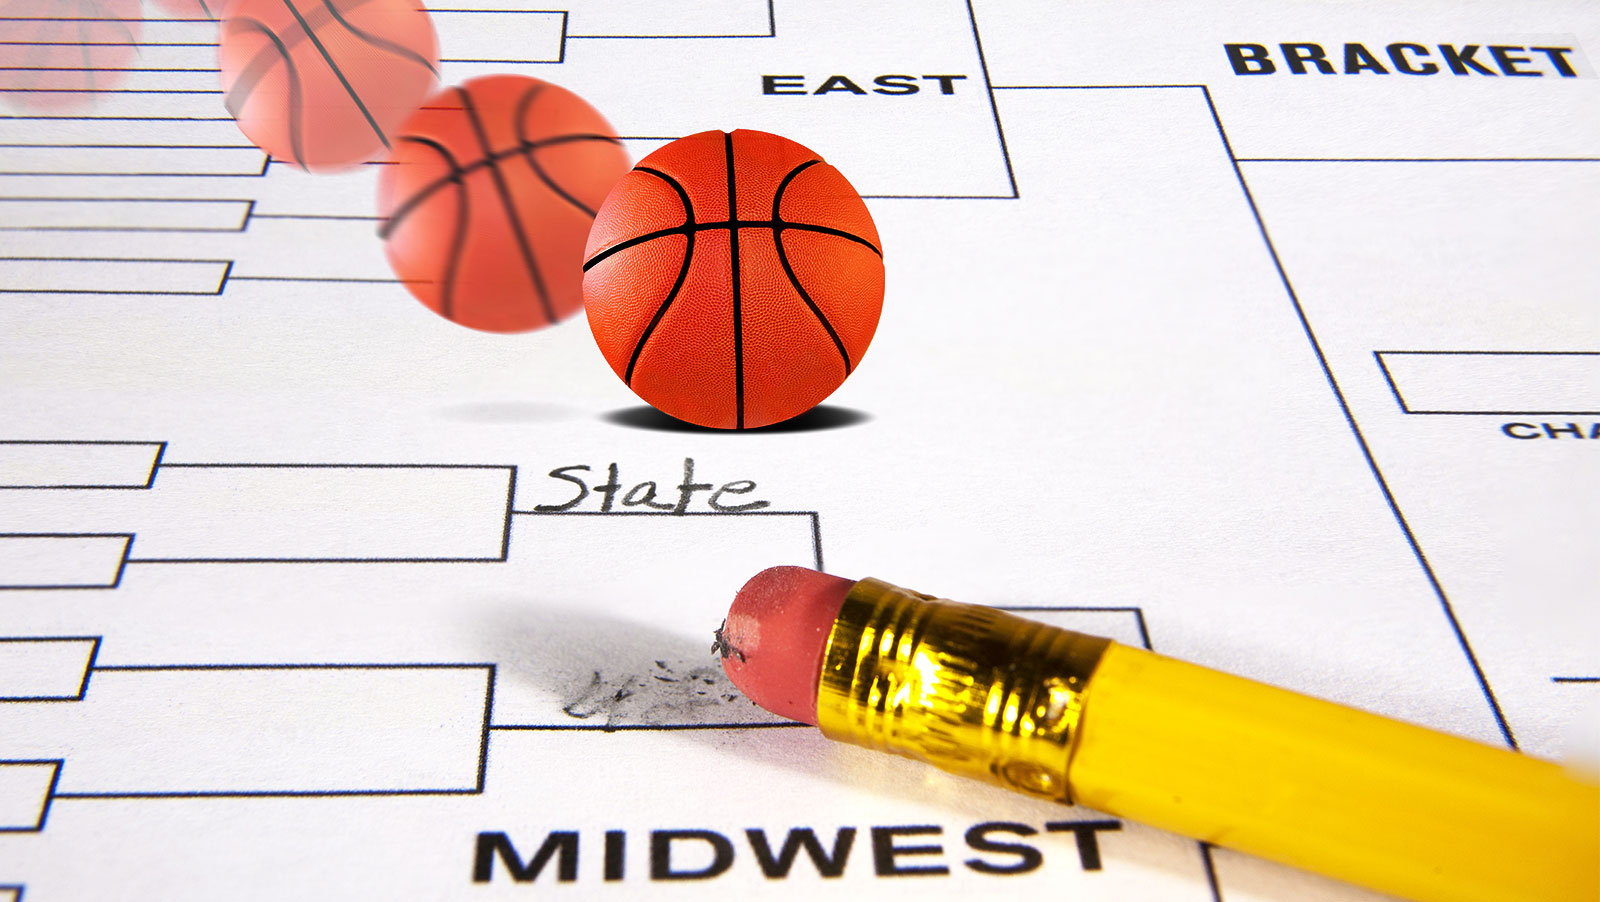 March Madness 2018: People's mad love for filling out NCAA brackets